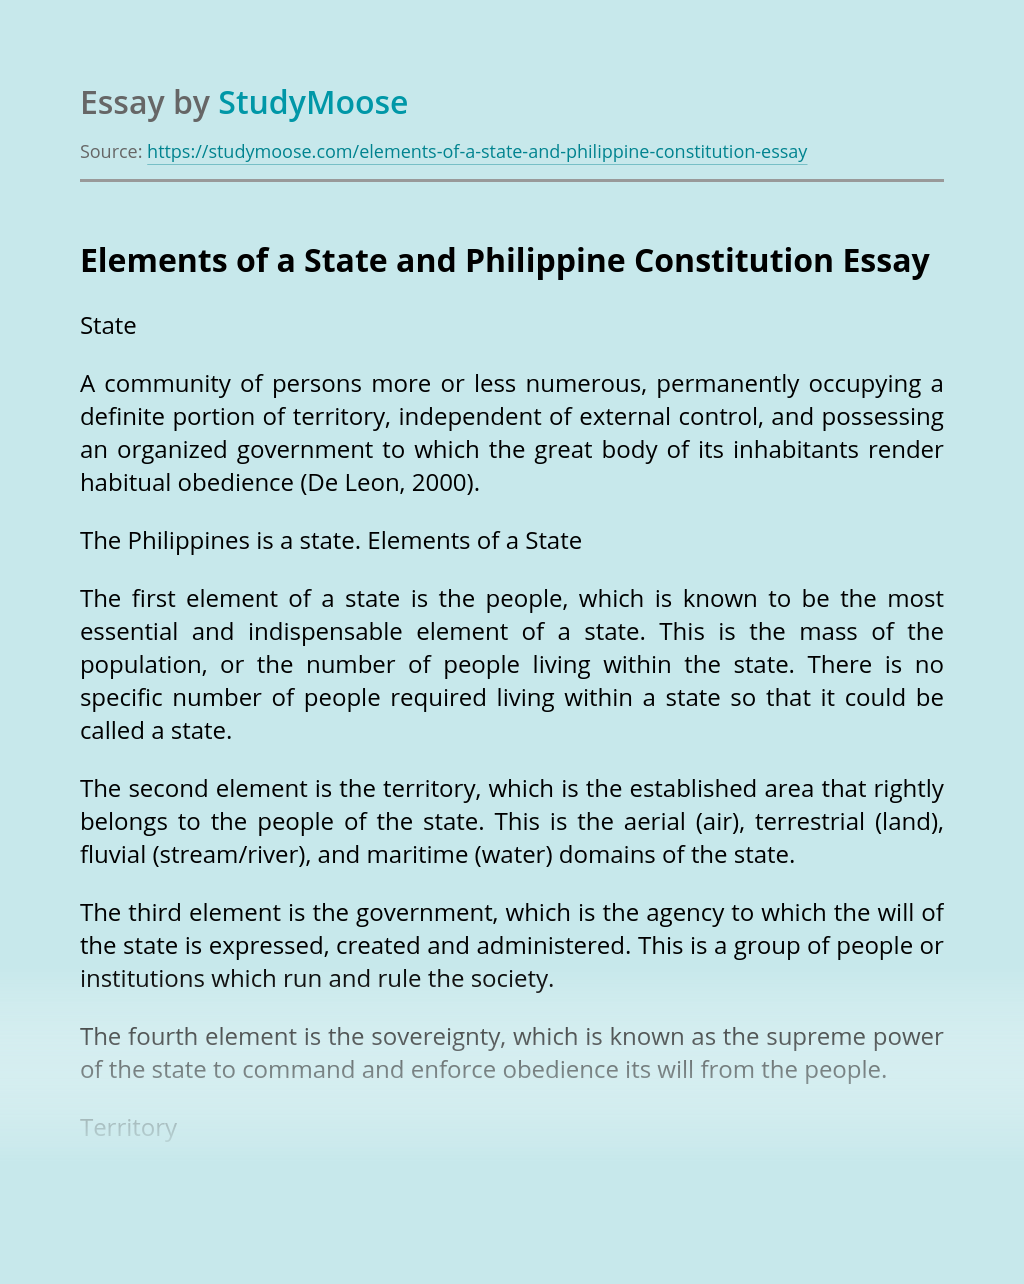 Elements of a State and Philippine Constitution